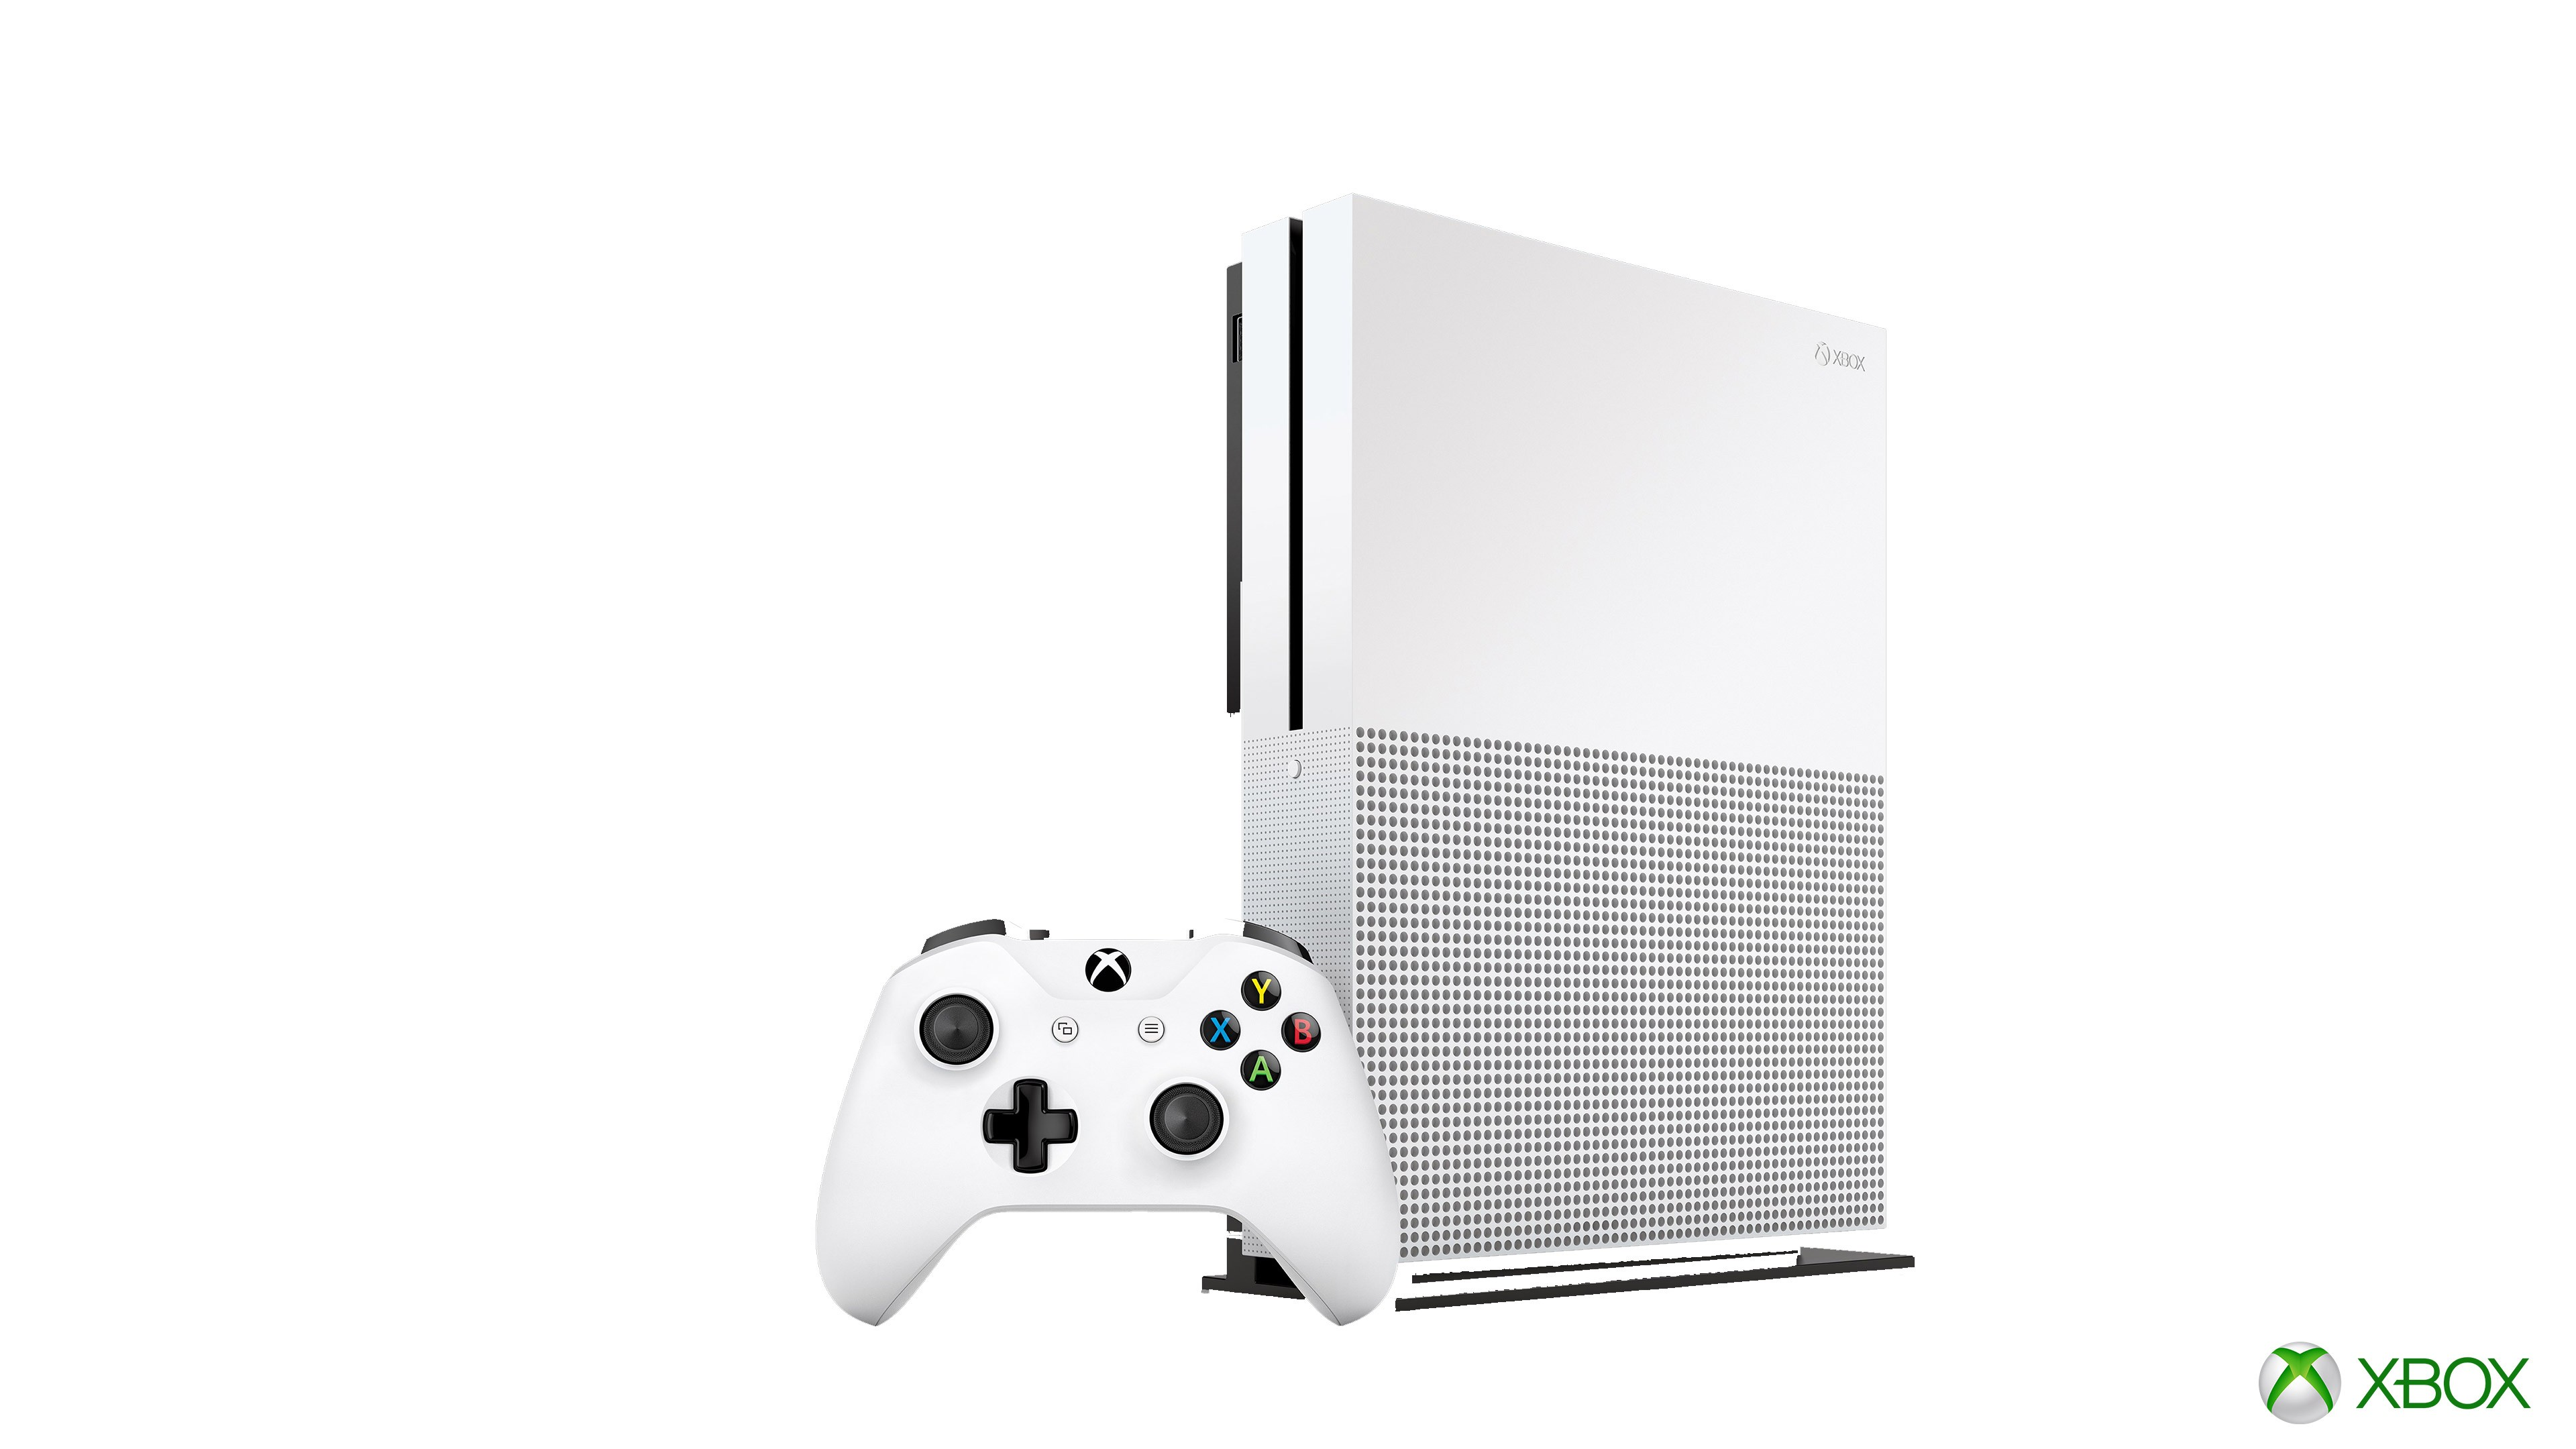 Wallpaper Xbox One S, white, Hi-Tech #11176